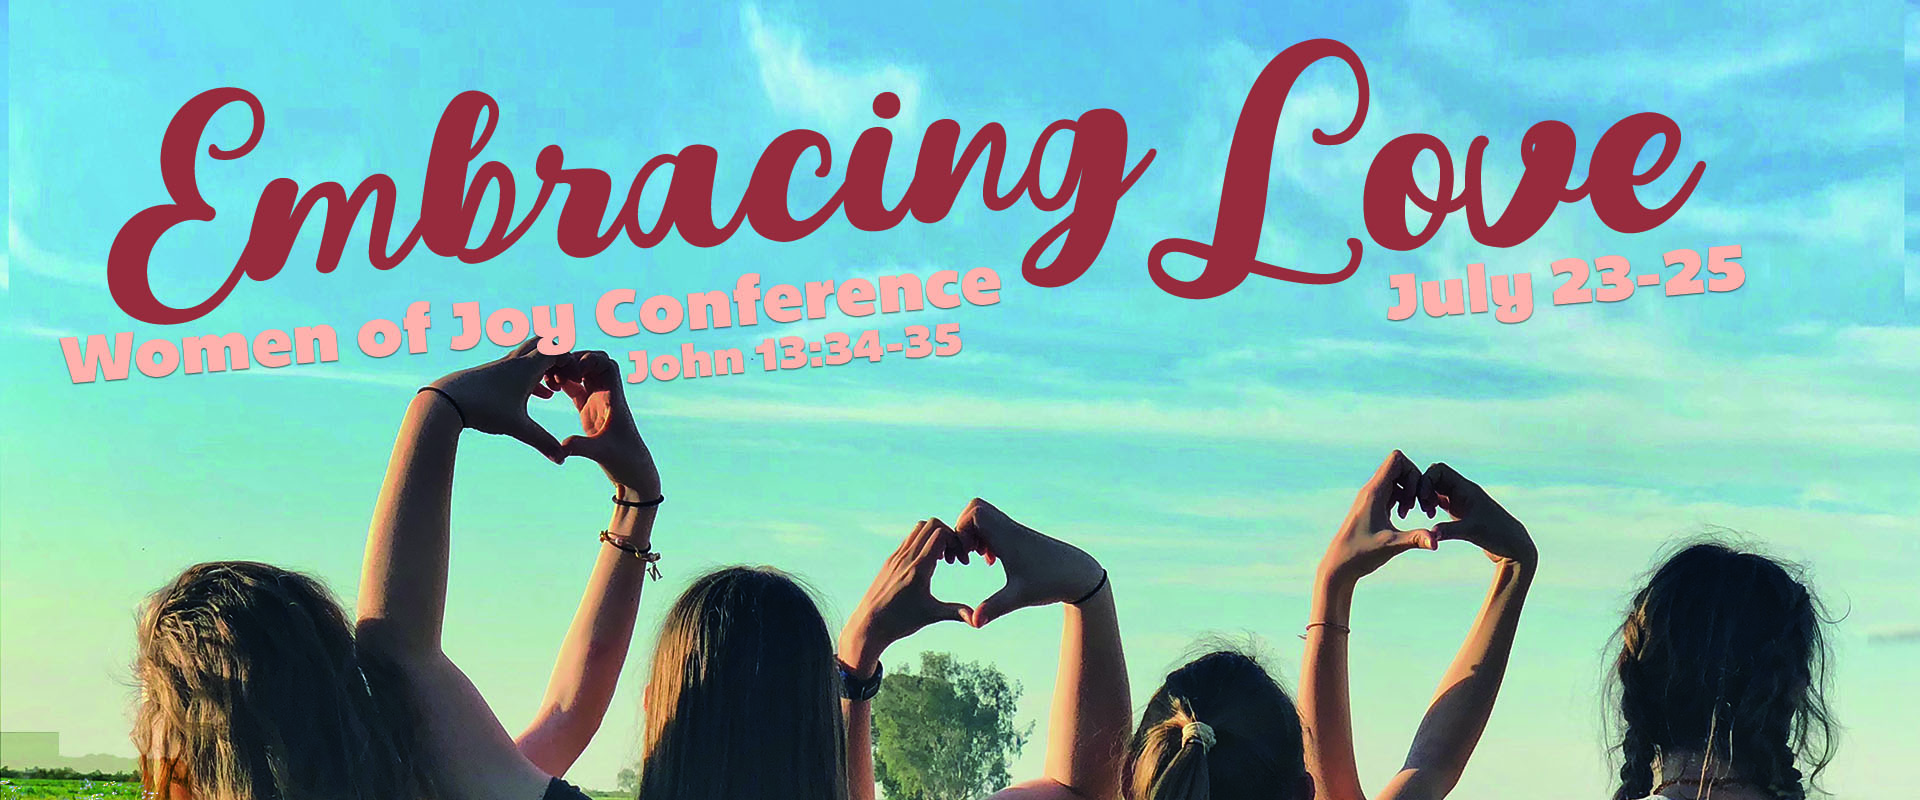 Embracing Love Women's Conference